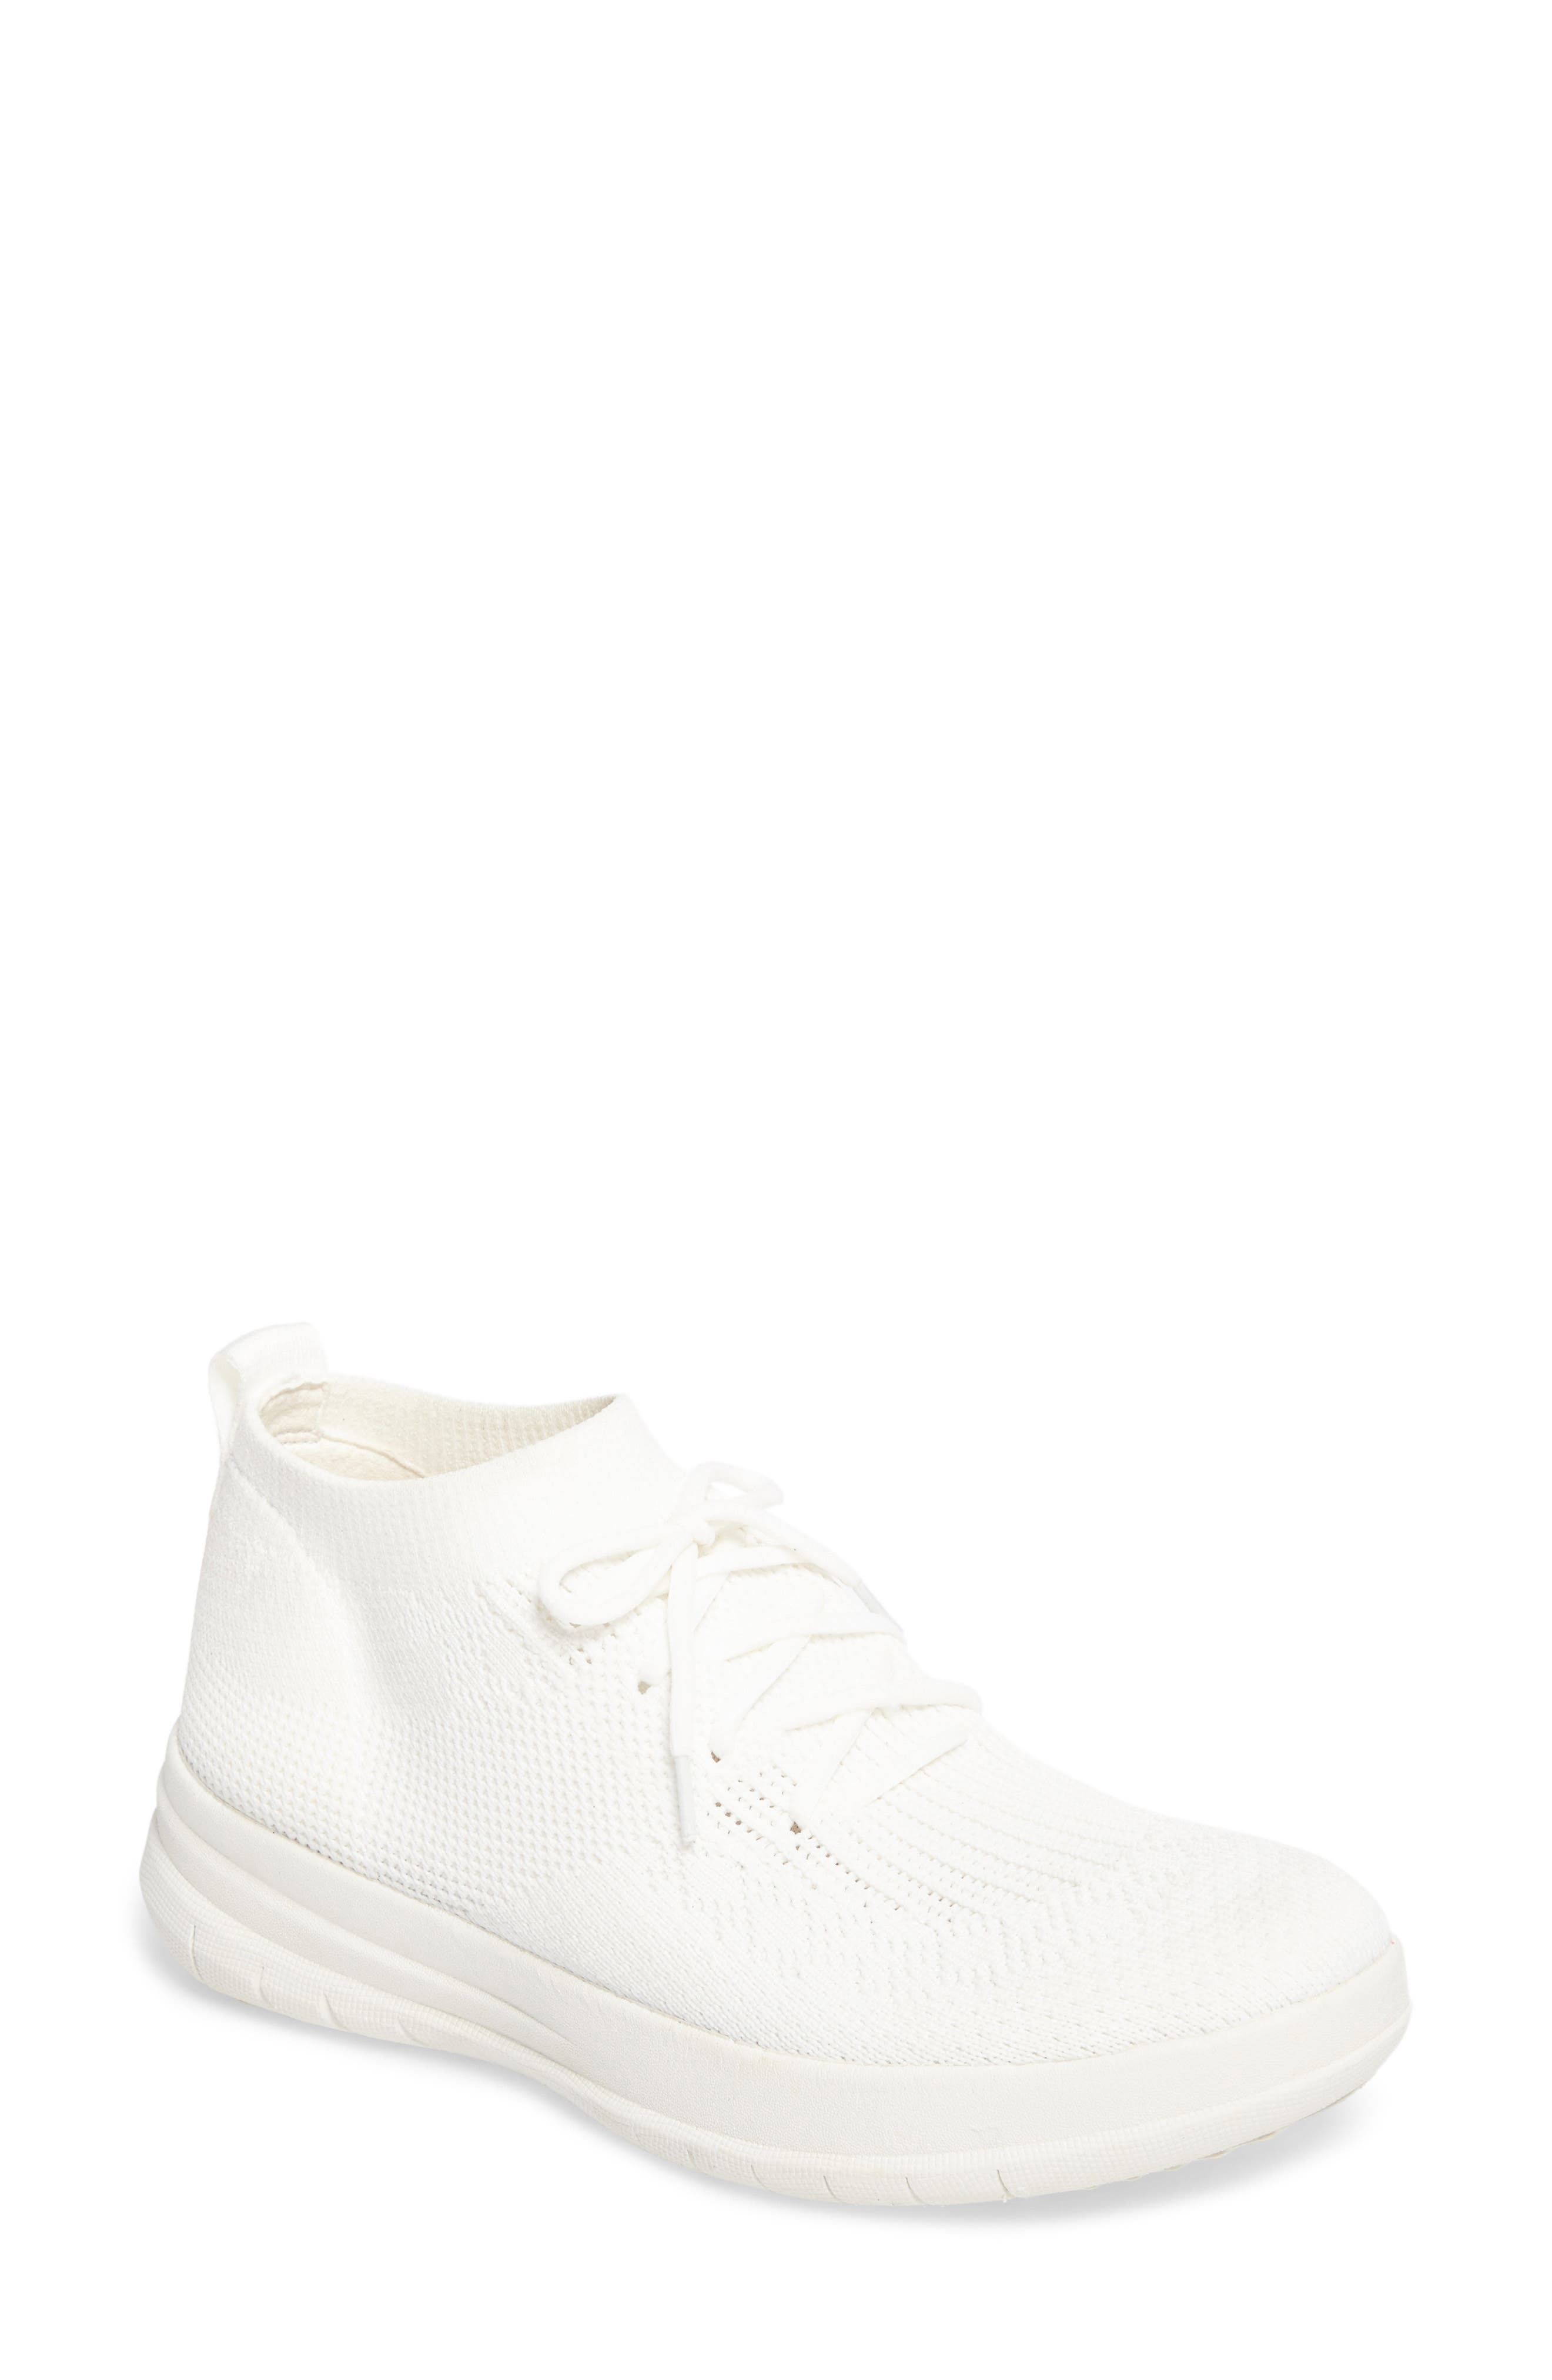 Überknit High Top Sneaker,                         Main,                         color, 108